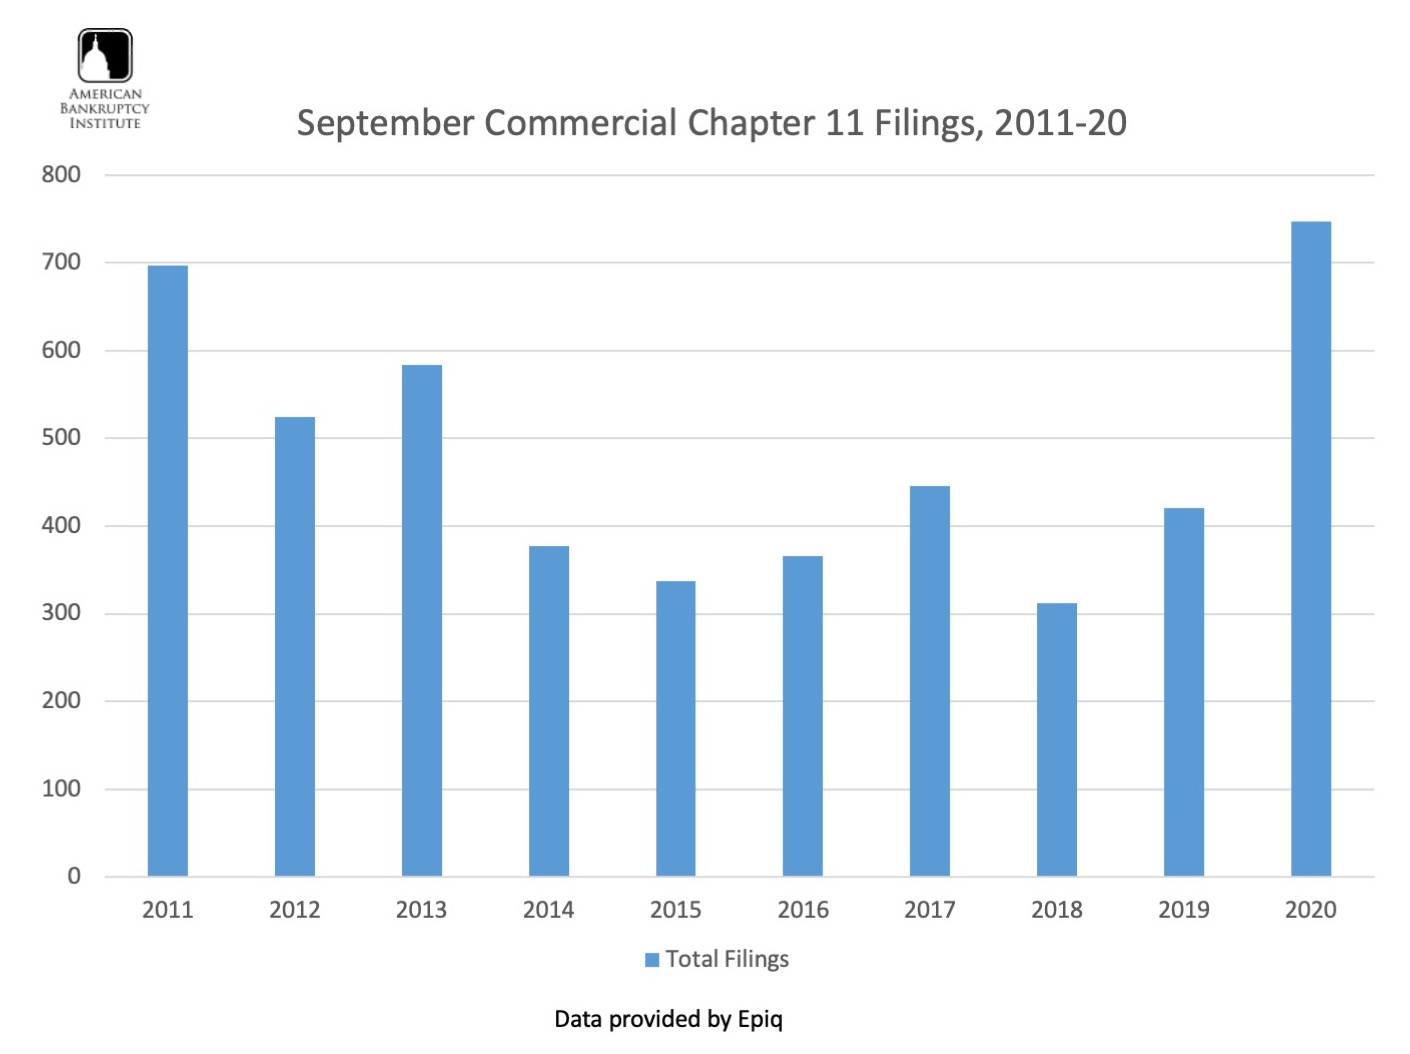 Visualization for September Commercial Chapter 11 Filings from 2011-20